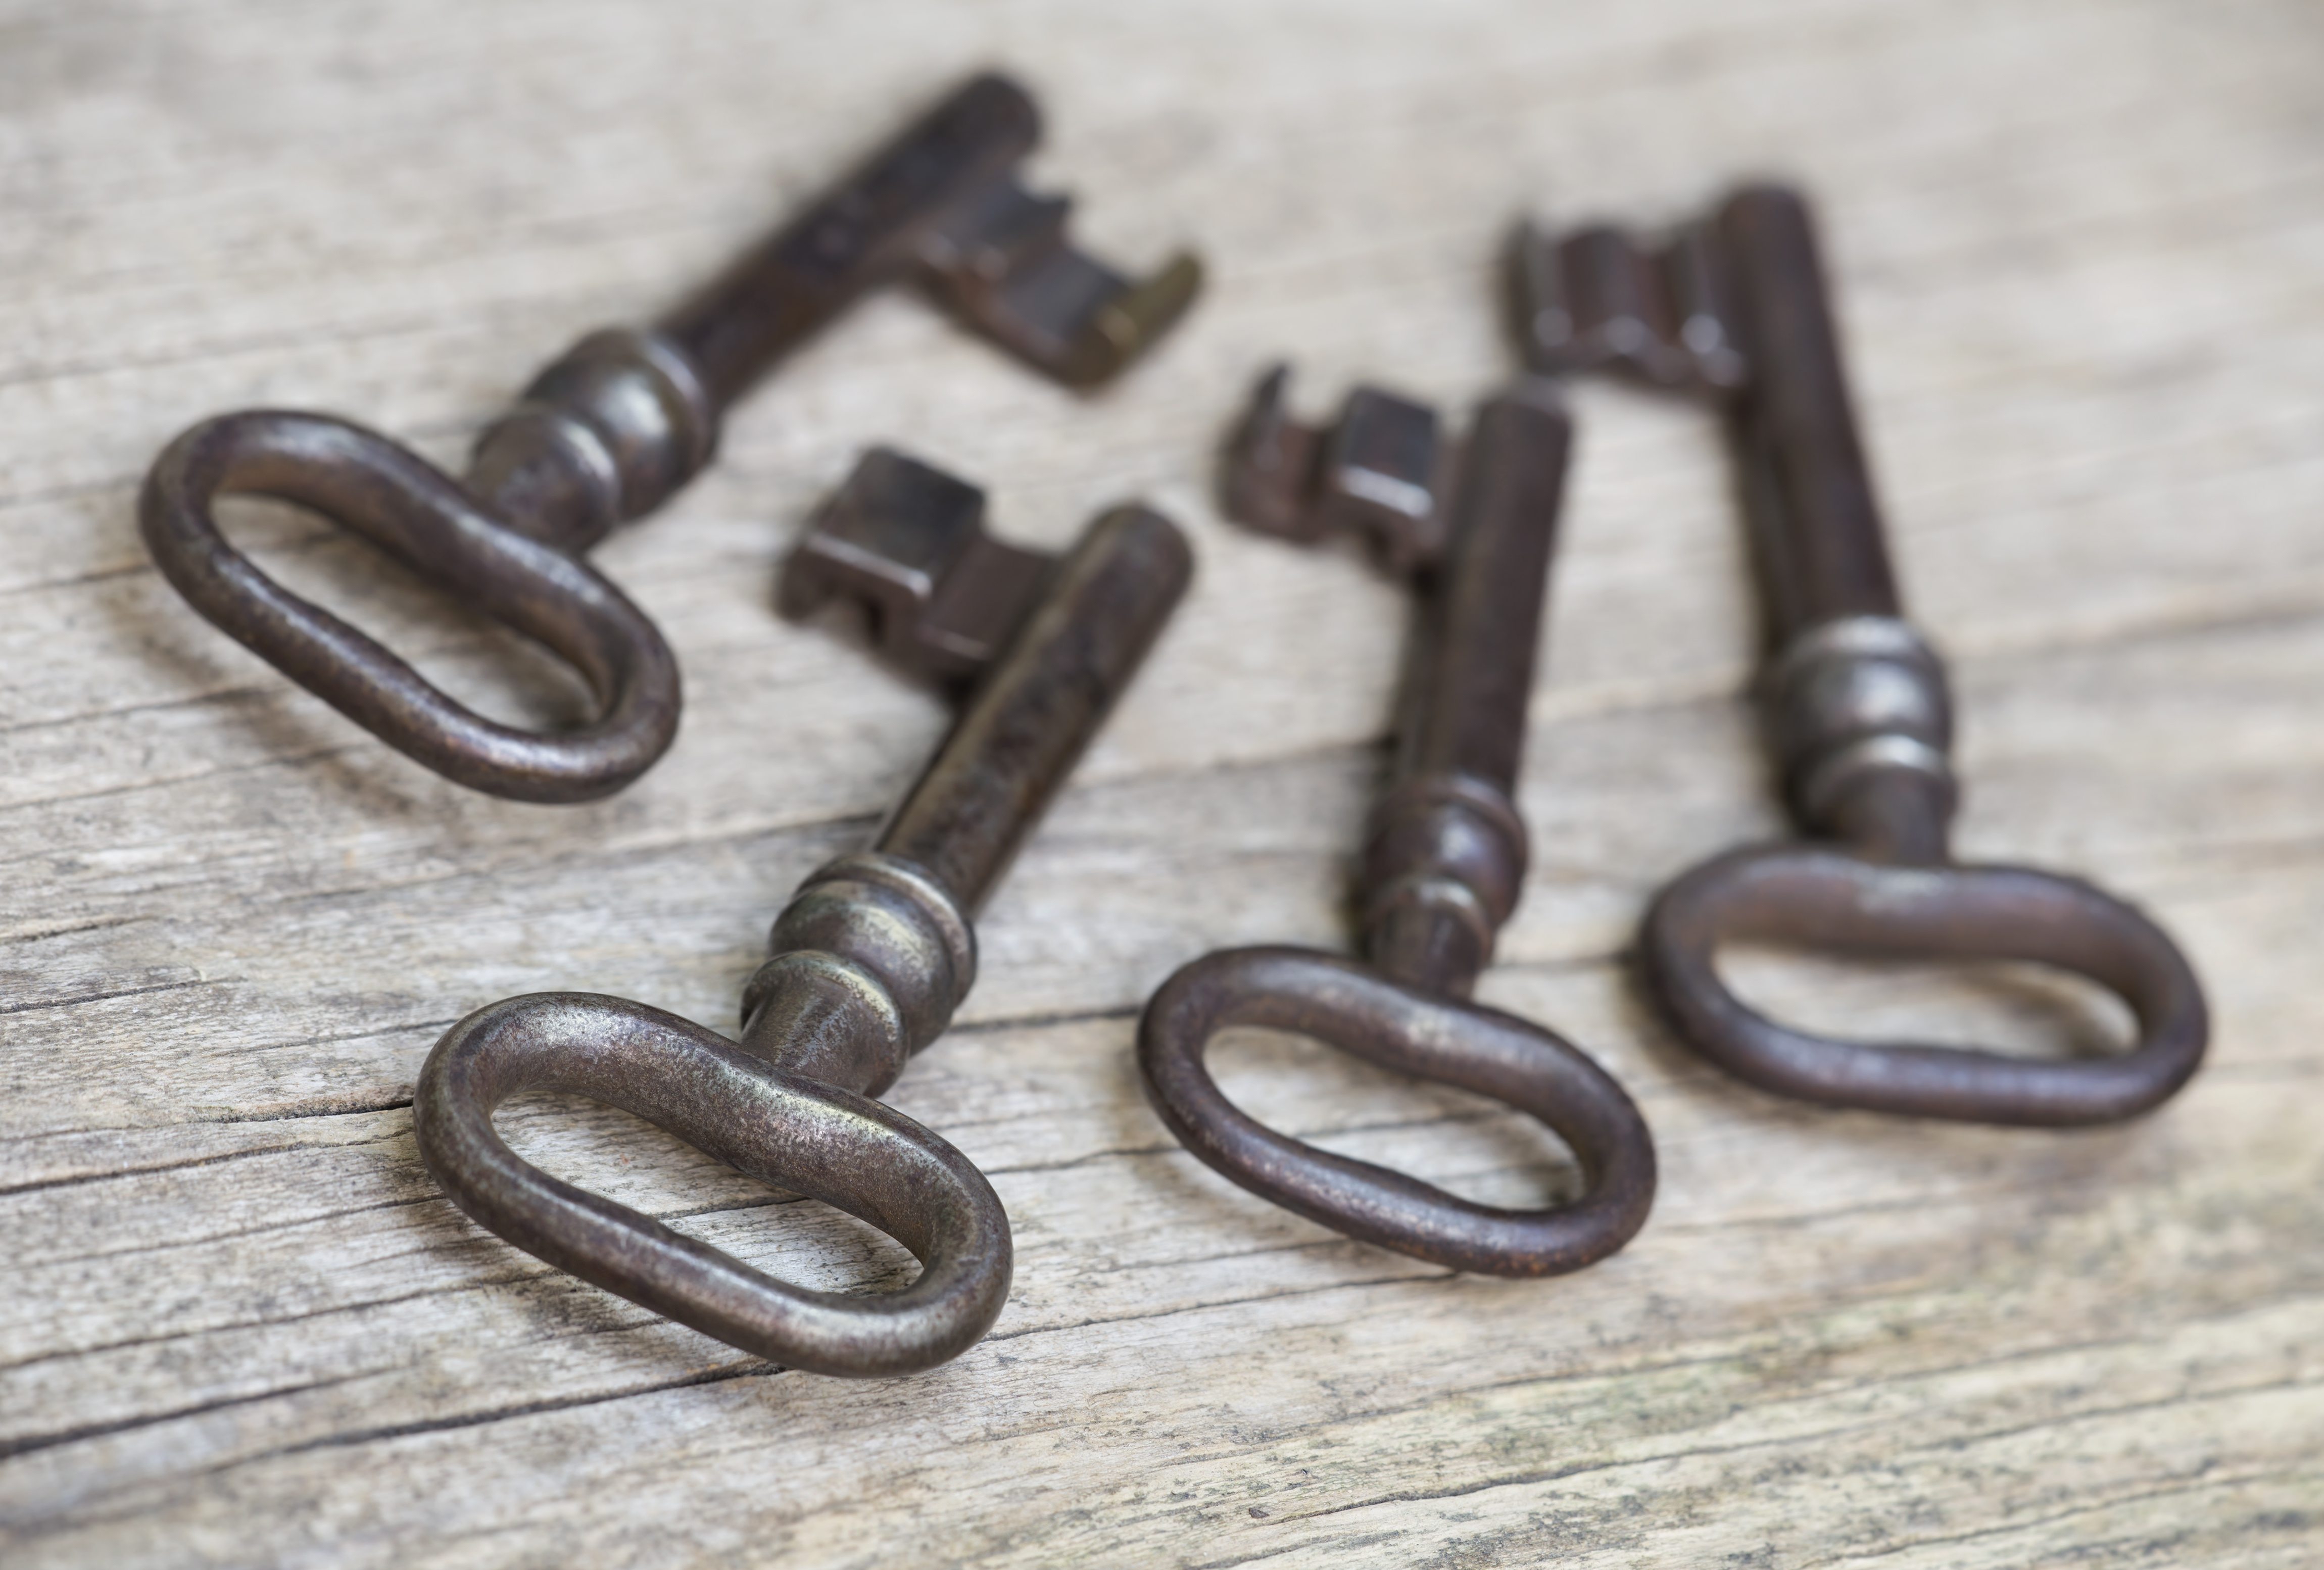 5 Tips to Win Escape Room Games